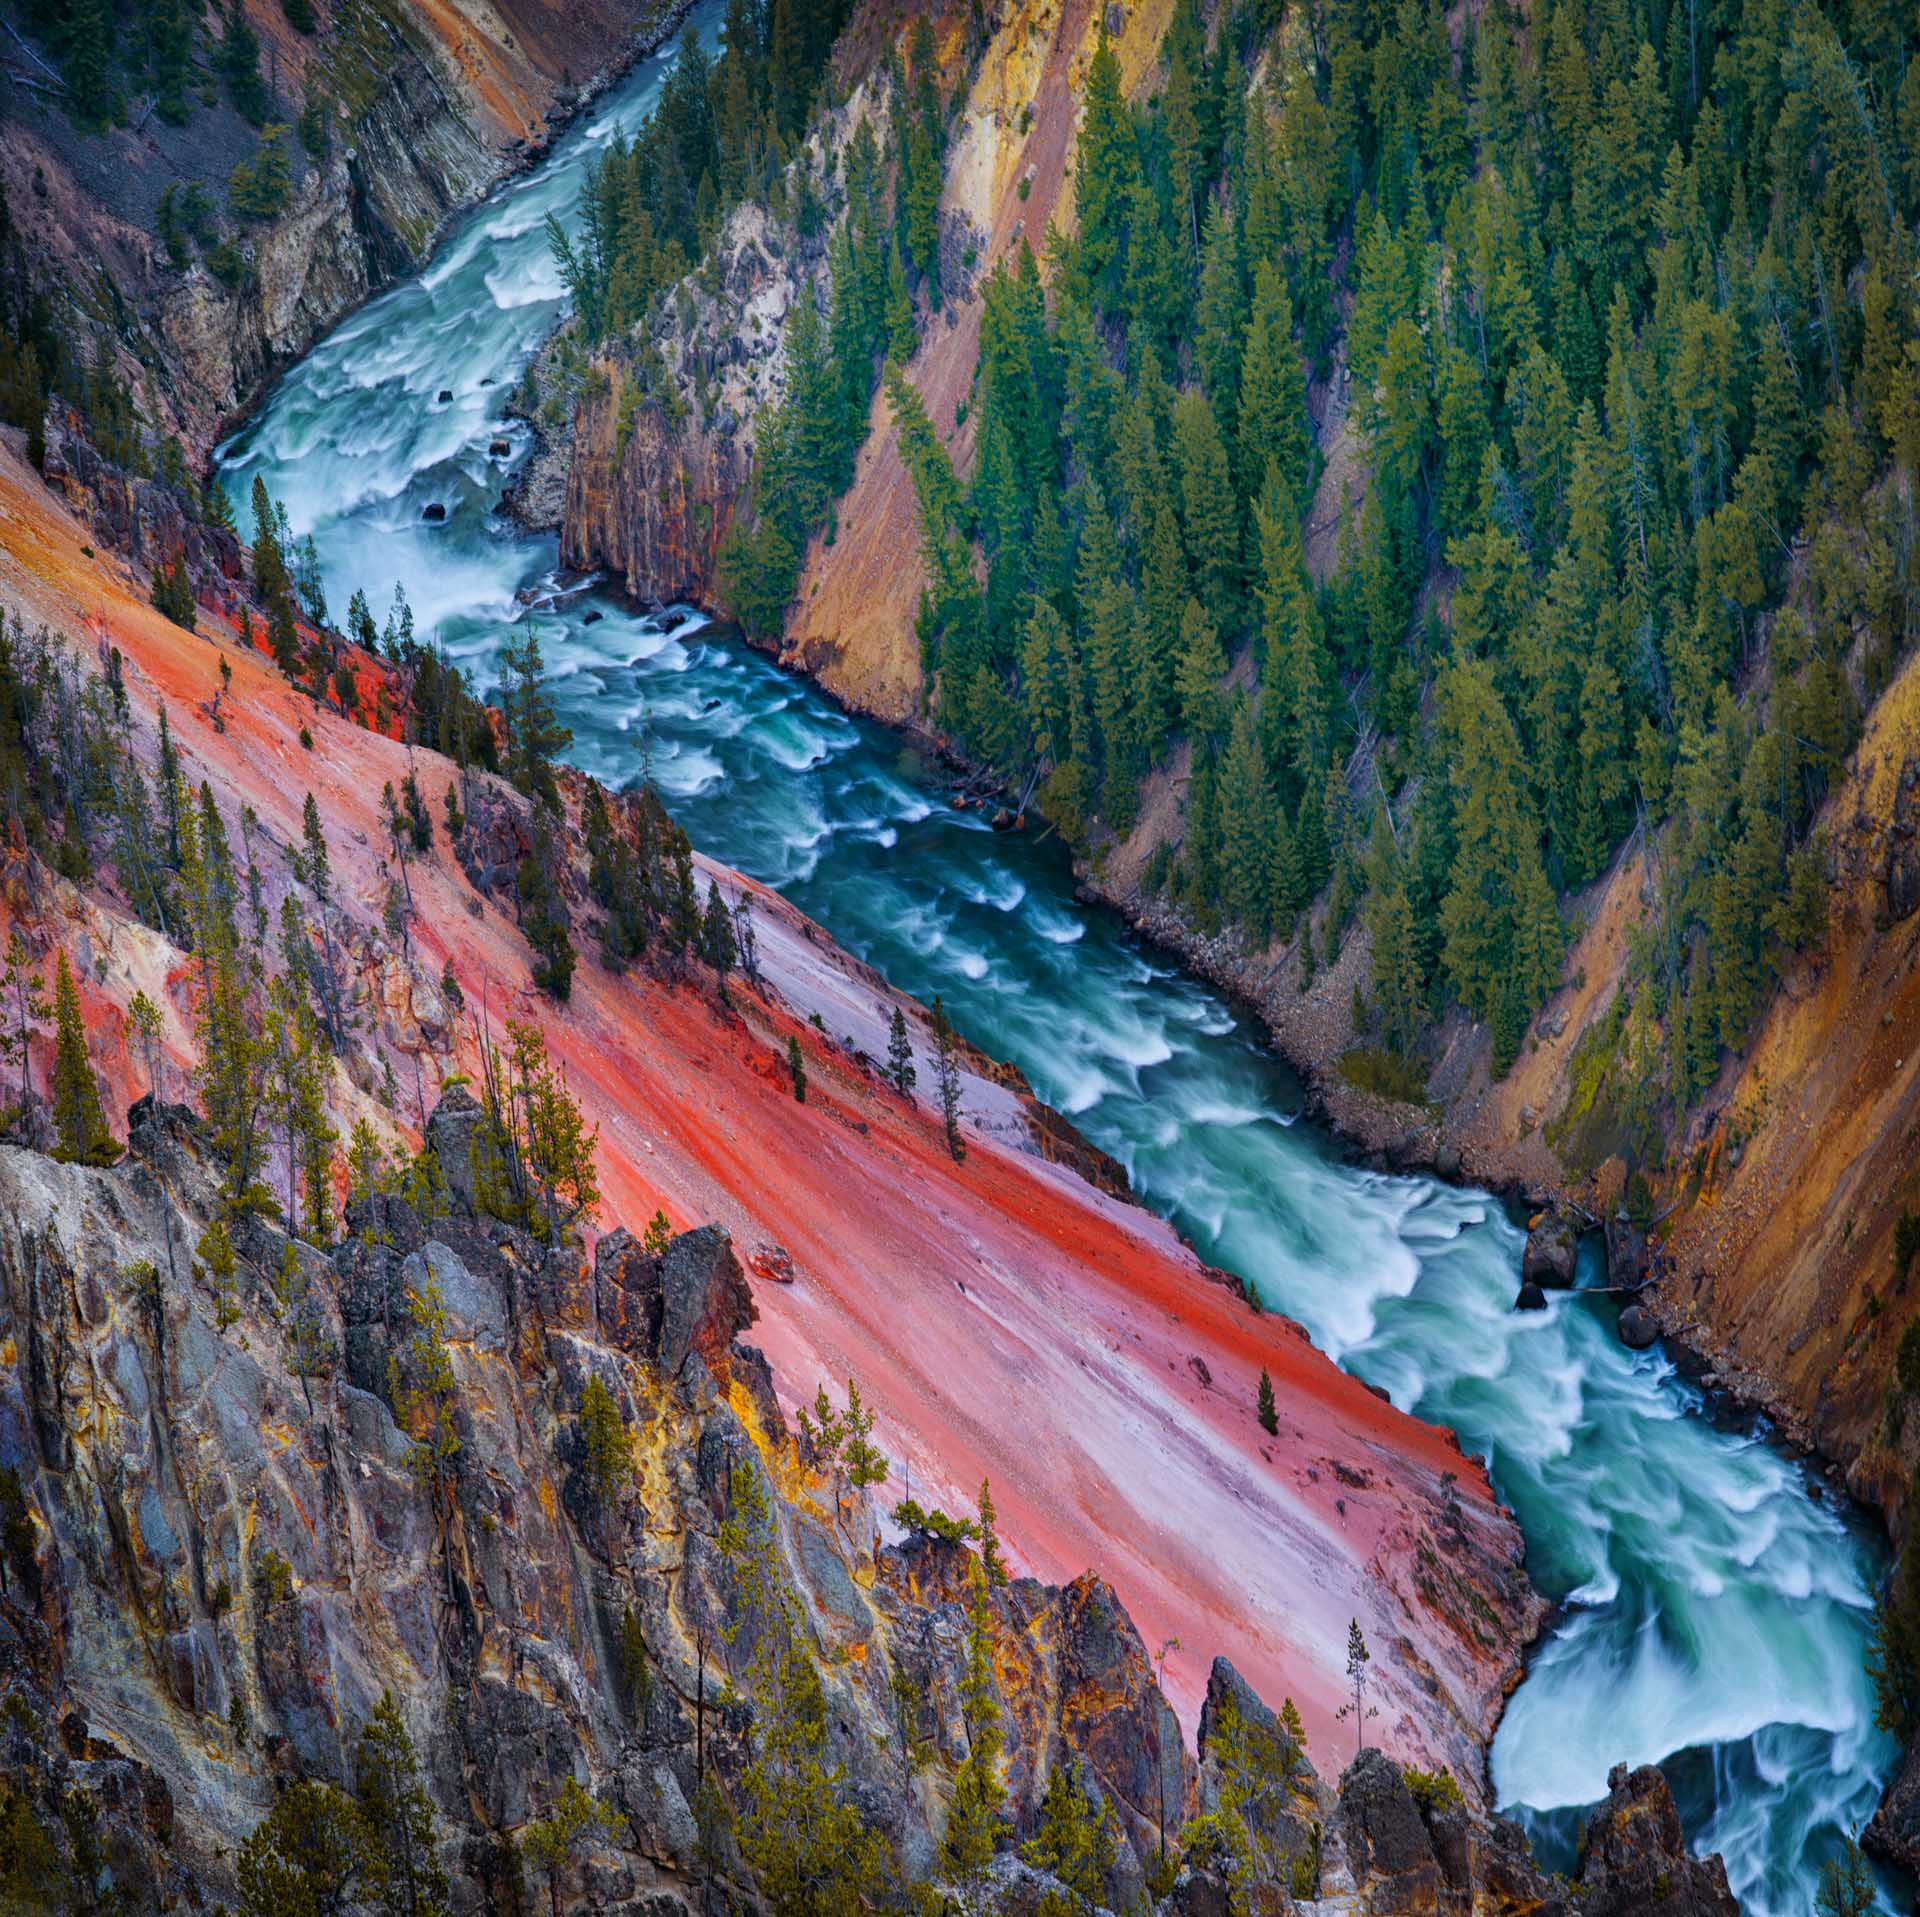 Yellowstone river Grand Canyon, Yellowstone National Park